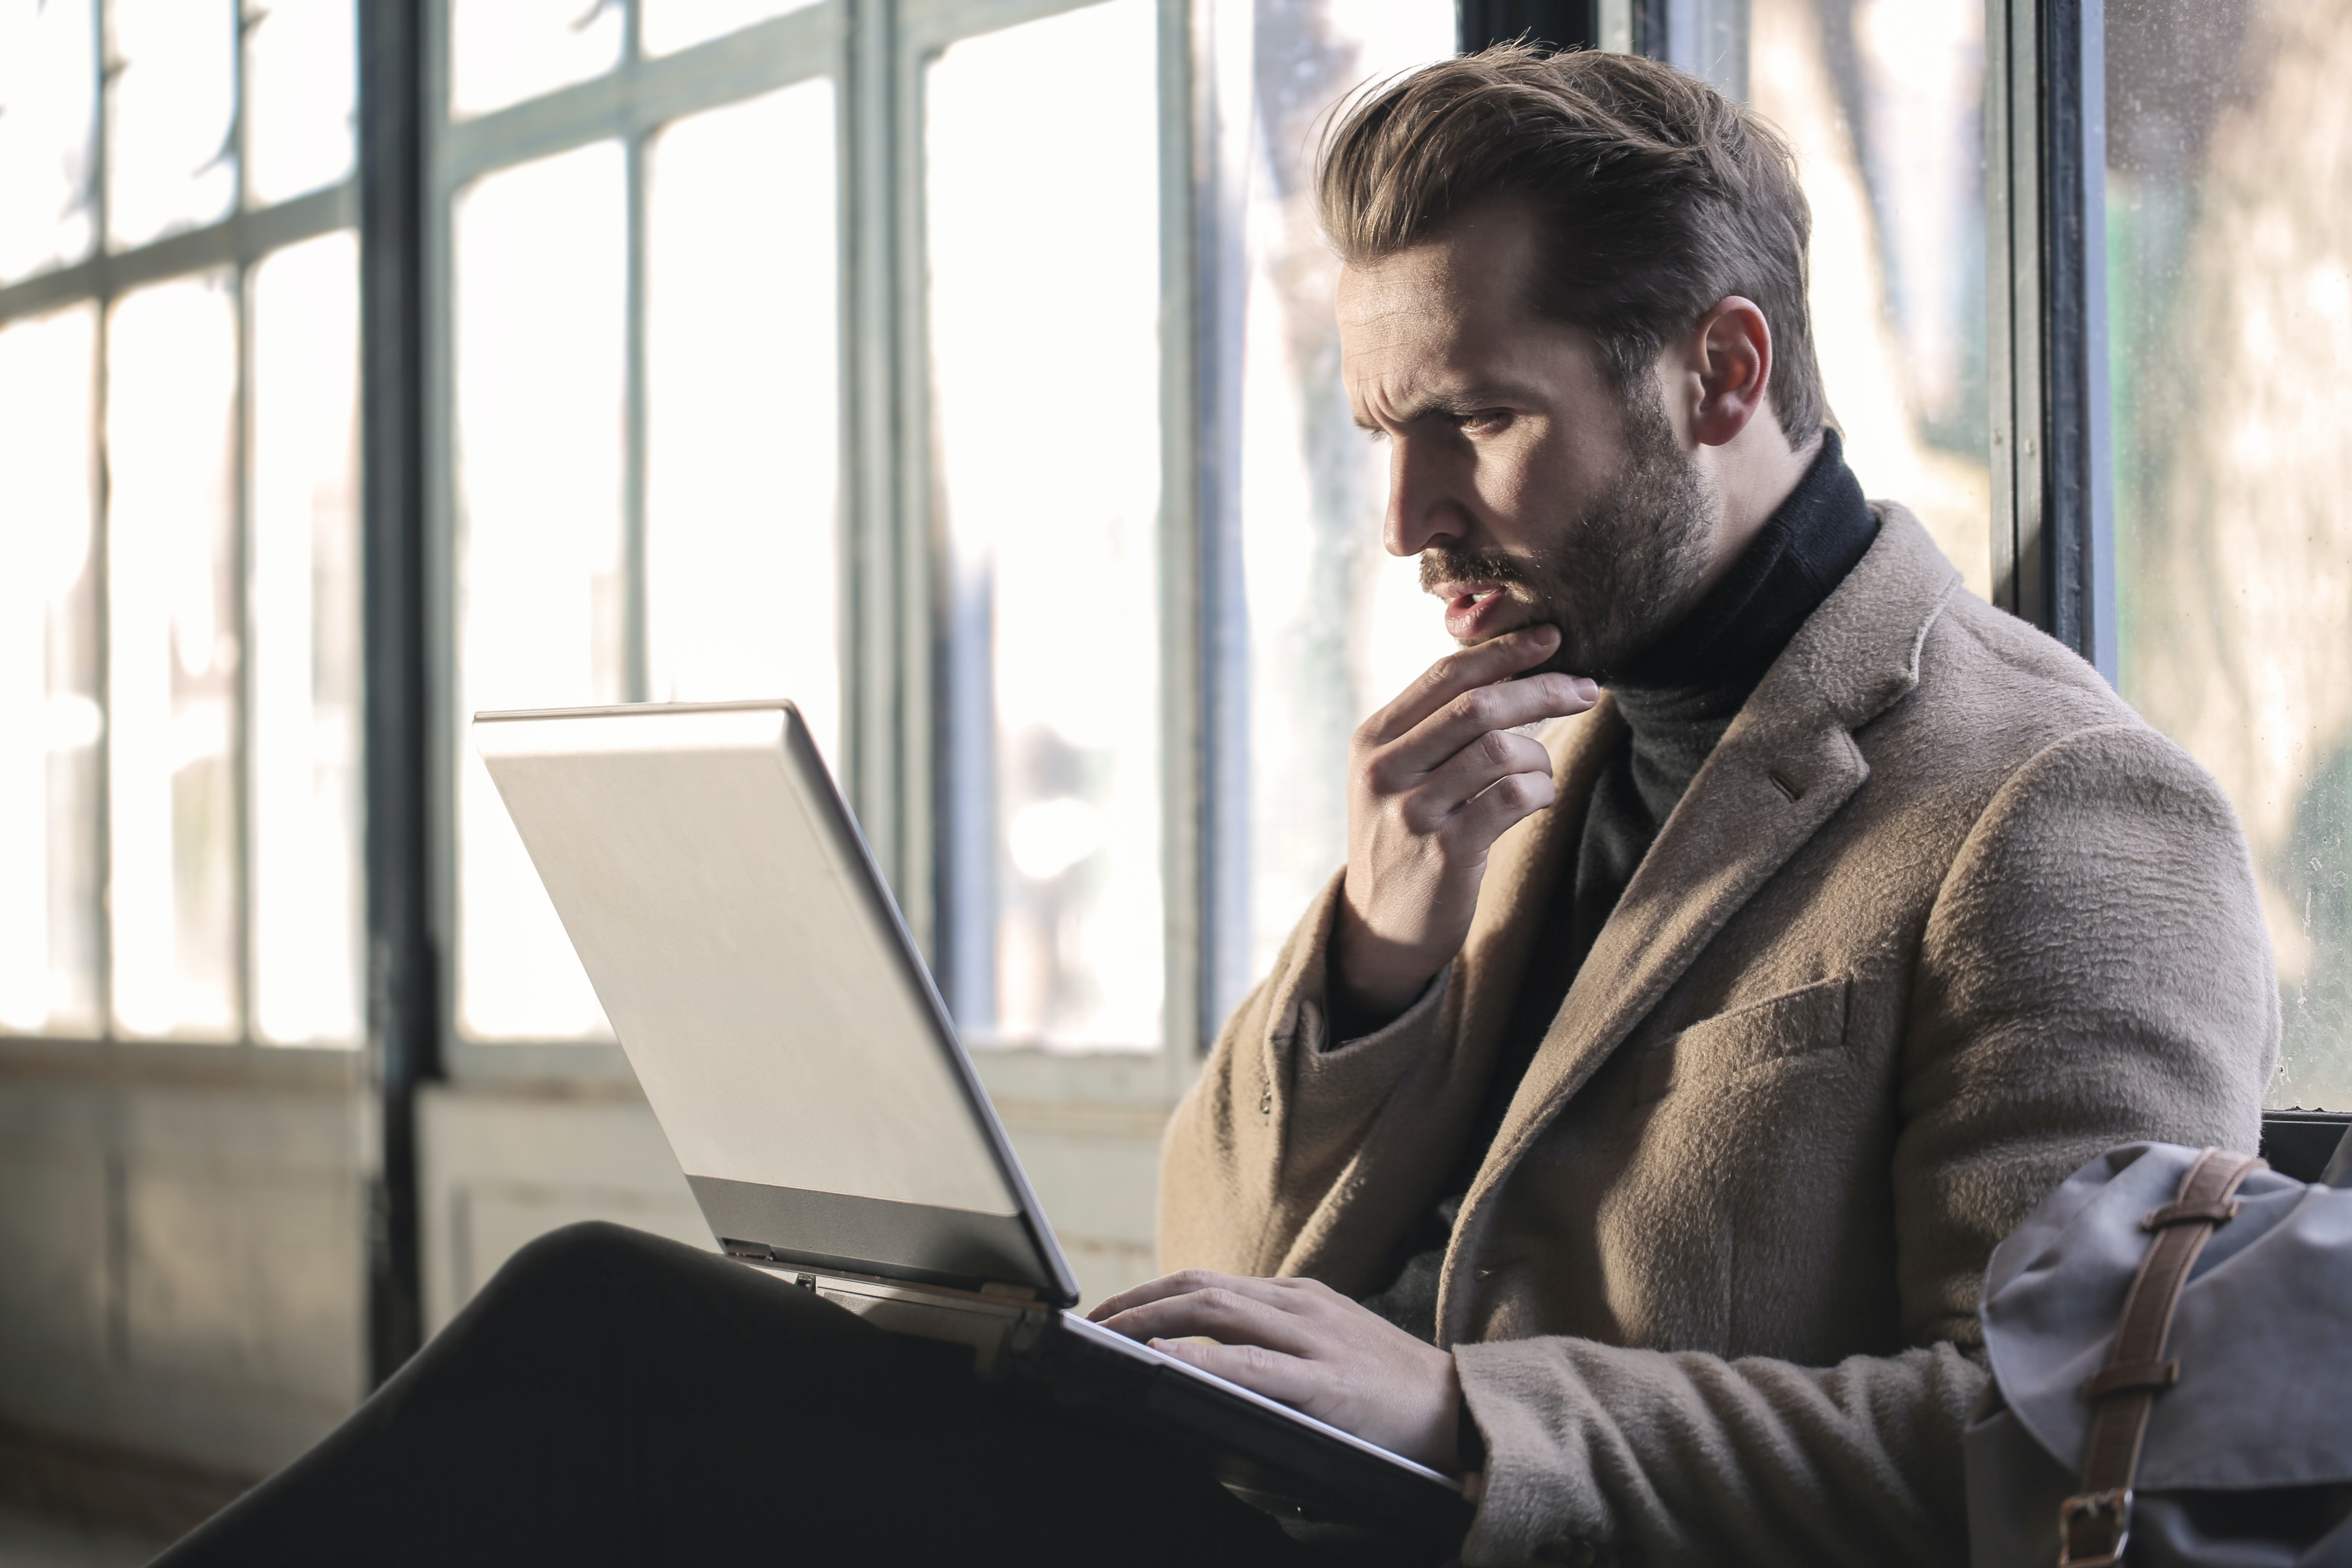 Man in thought while looking at laptop screen